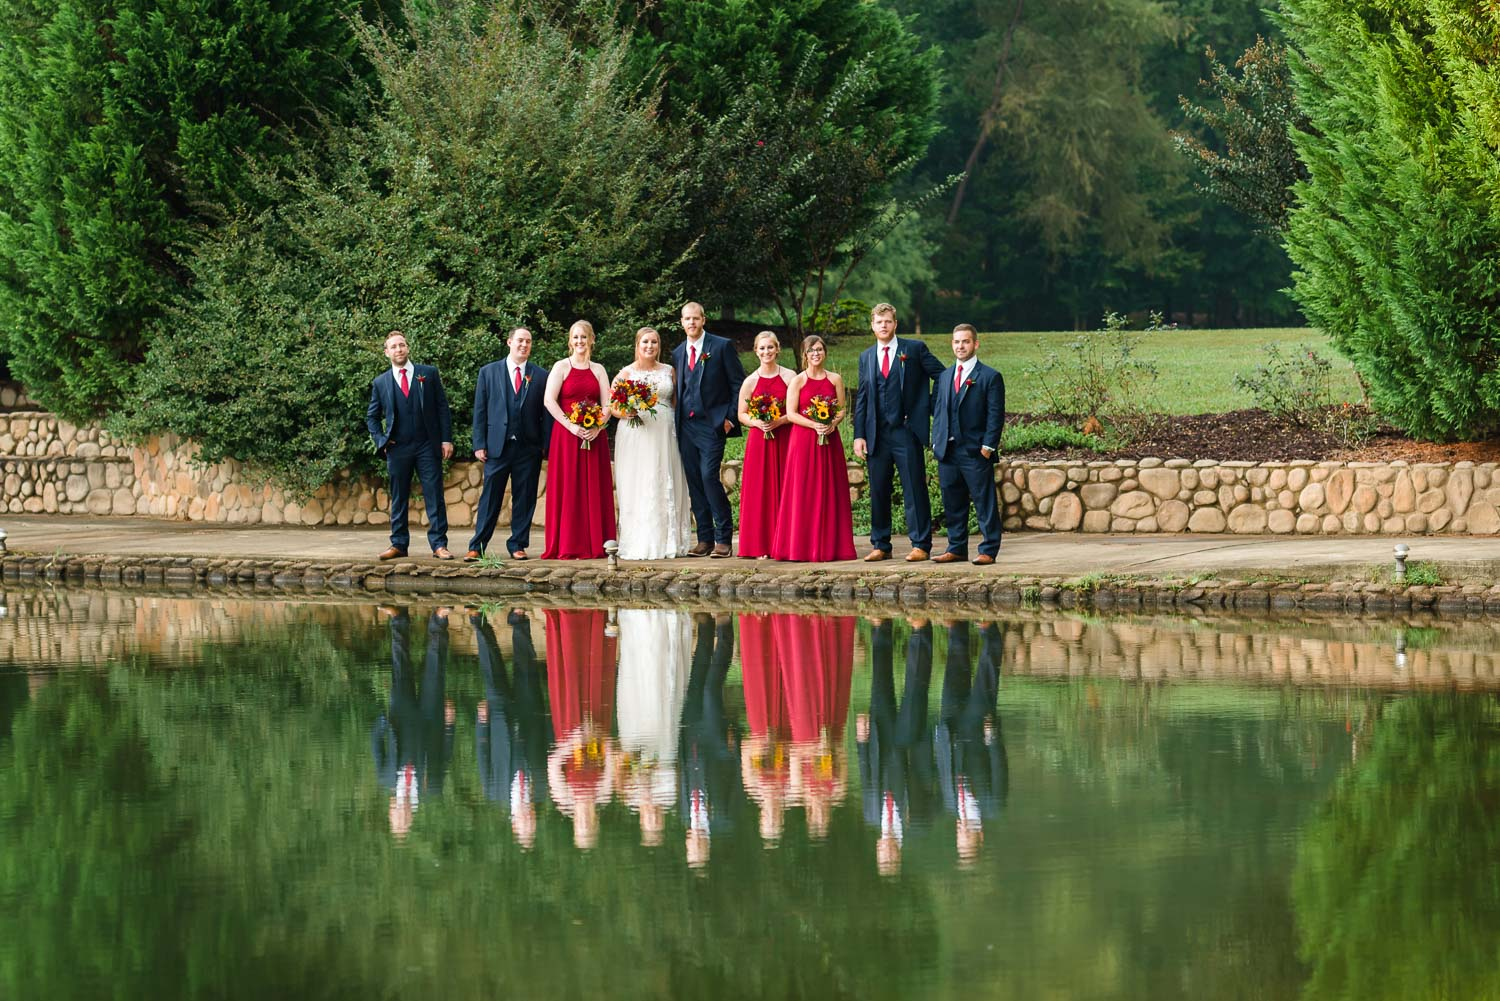 red white and blue wwedding party standing at edge of pond with fullreflections of them in the water